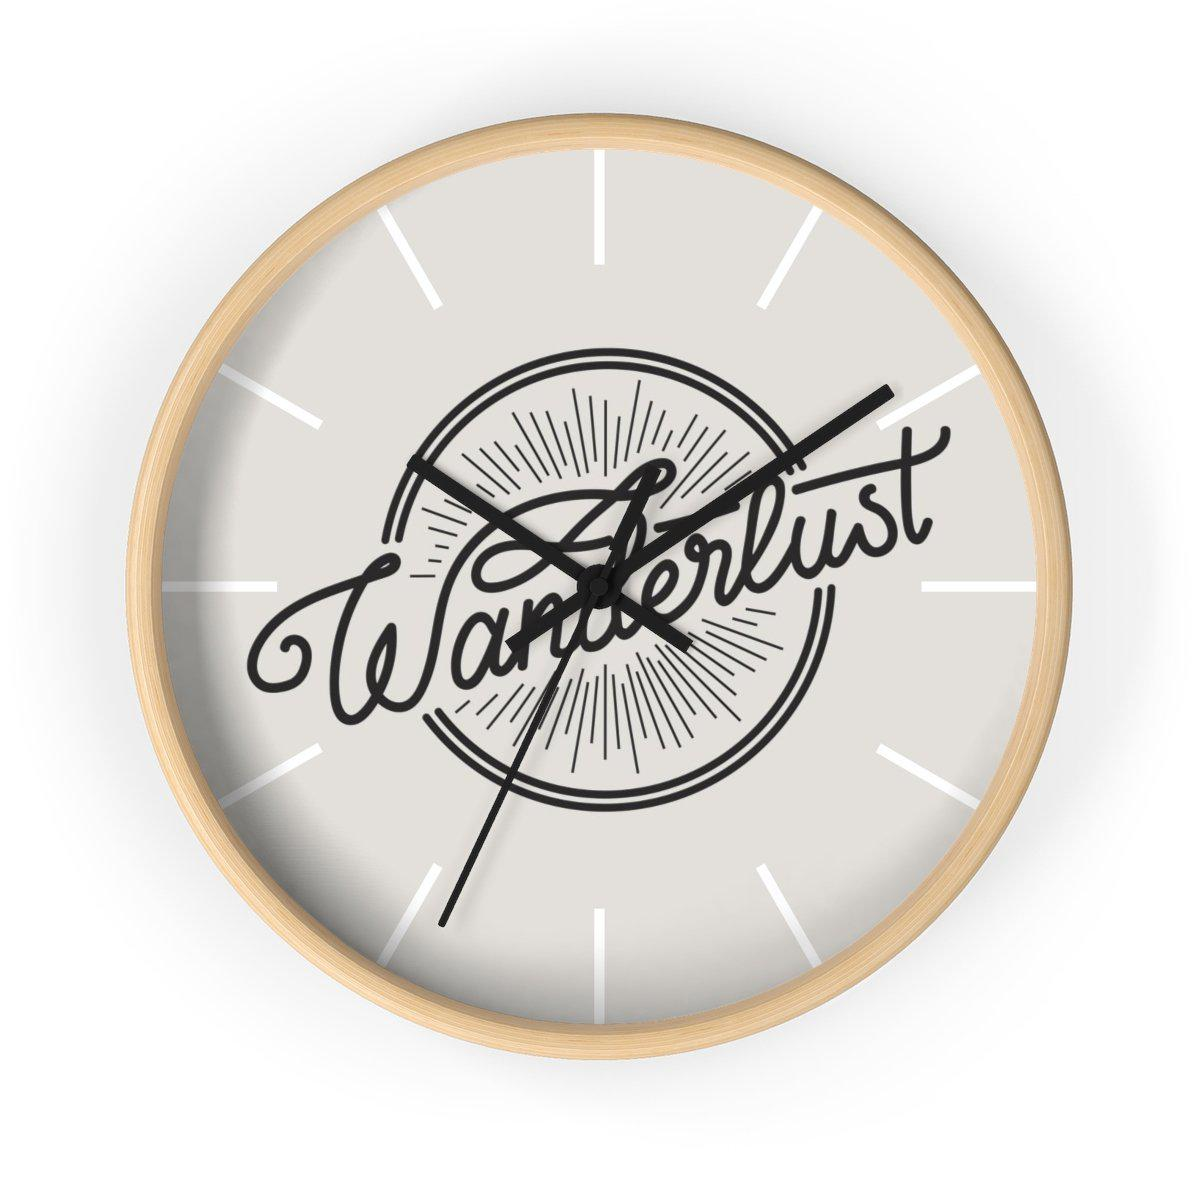 Maison d'Elite Wanderlust Wall clock-Home Décor › Accents › Wall Decor › Clocks & Sculptures-Maison d'Elite-Wooden-Black-Très Elite